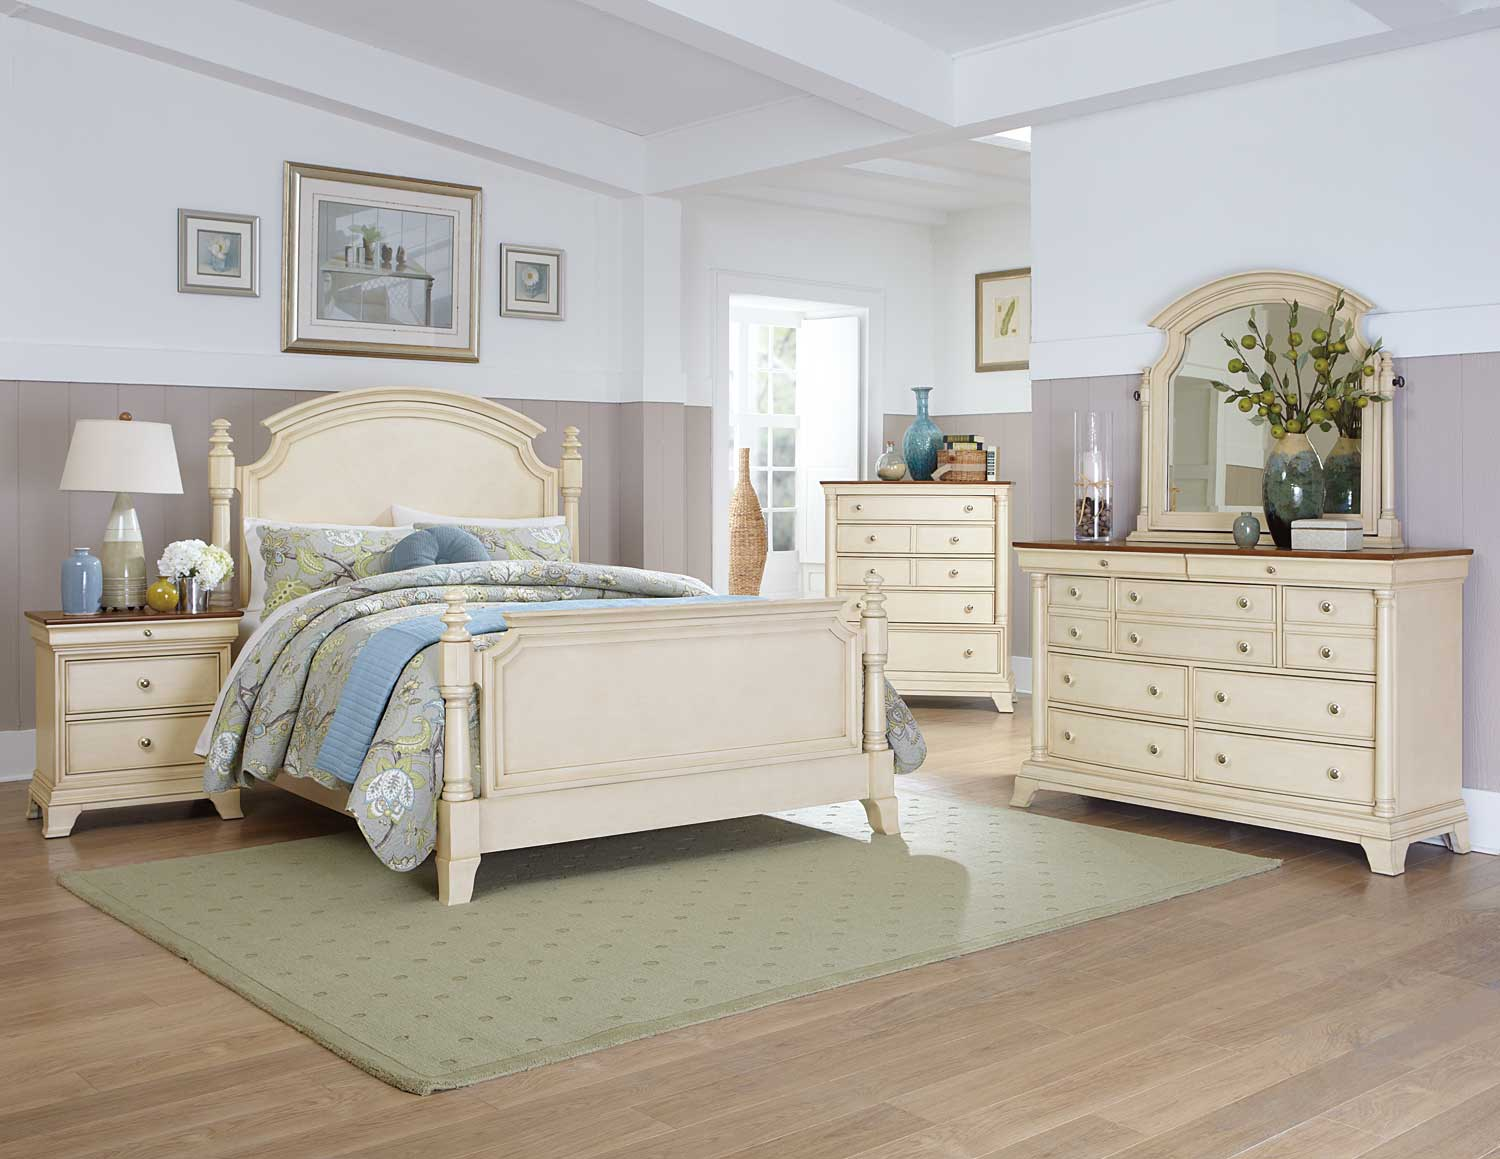 Homelegance inglewood ii bedroom set white b1402w bed for Bedroom ideas with white furniture